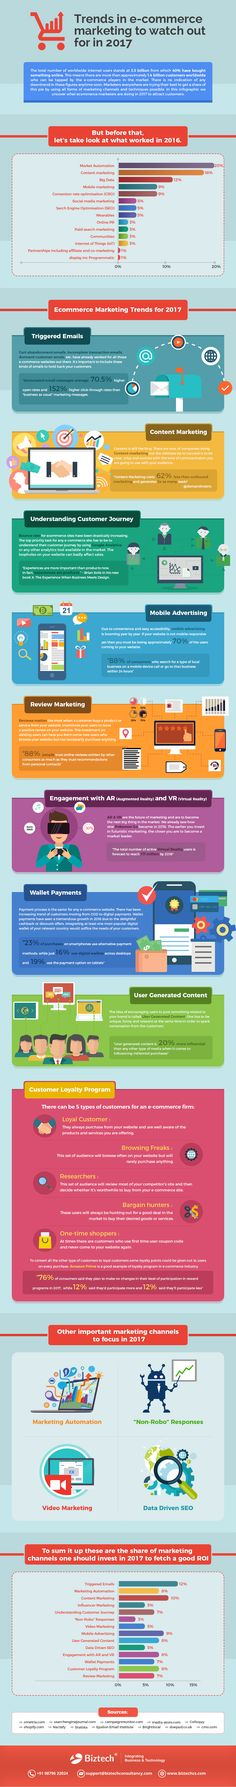 eCommerce Marketing Trends to Watch Out for in 2017 [Infographic] | Social Media Today